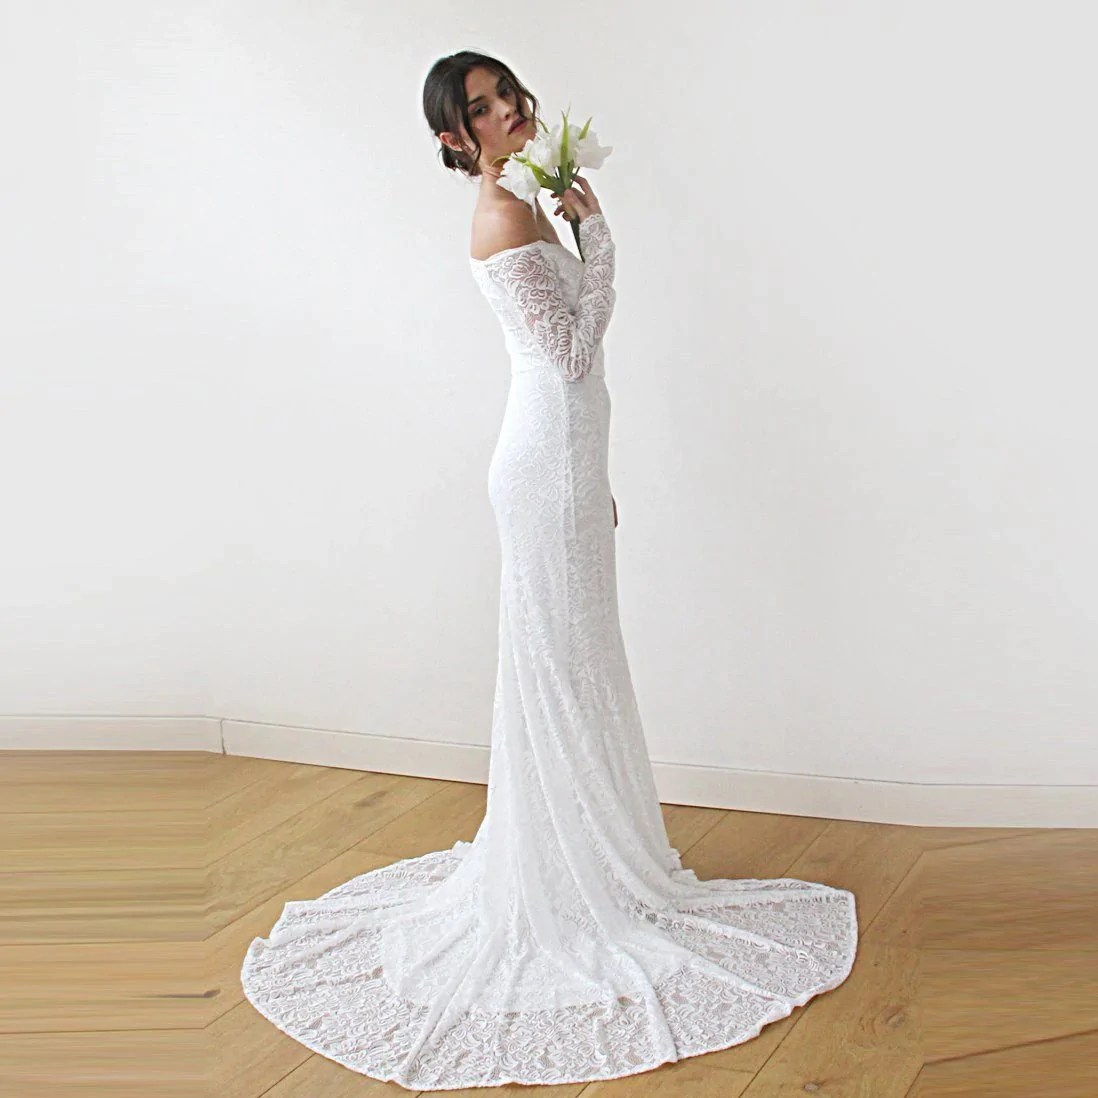 Ivory Wedding Dress With A Train, Sweetheart Cleavage